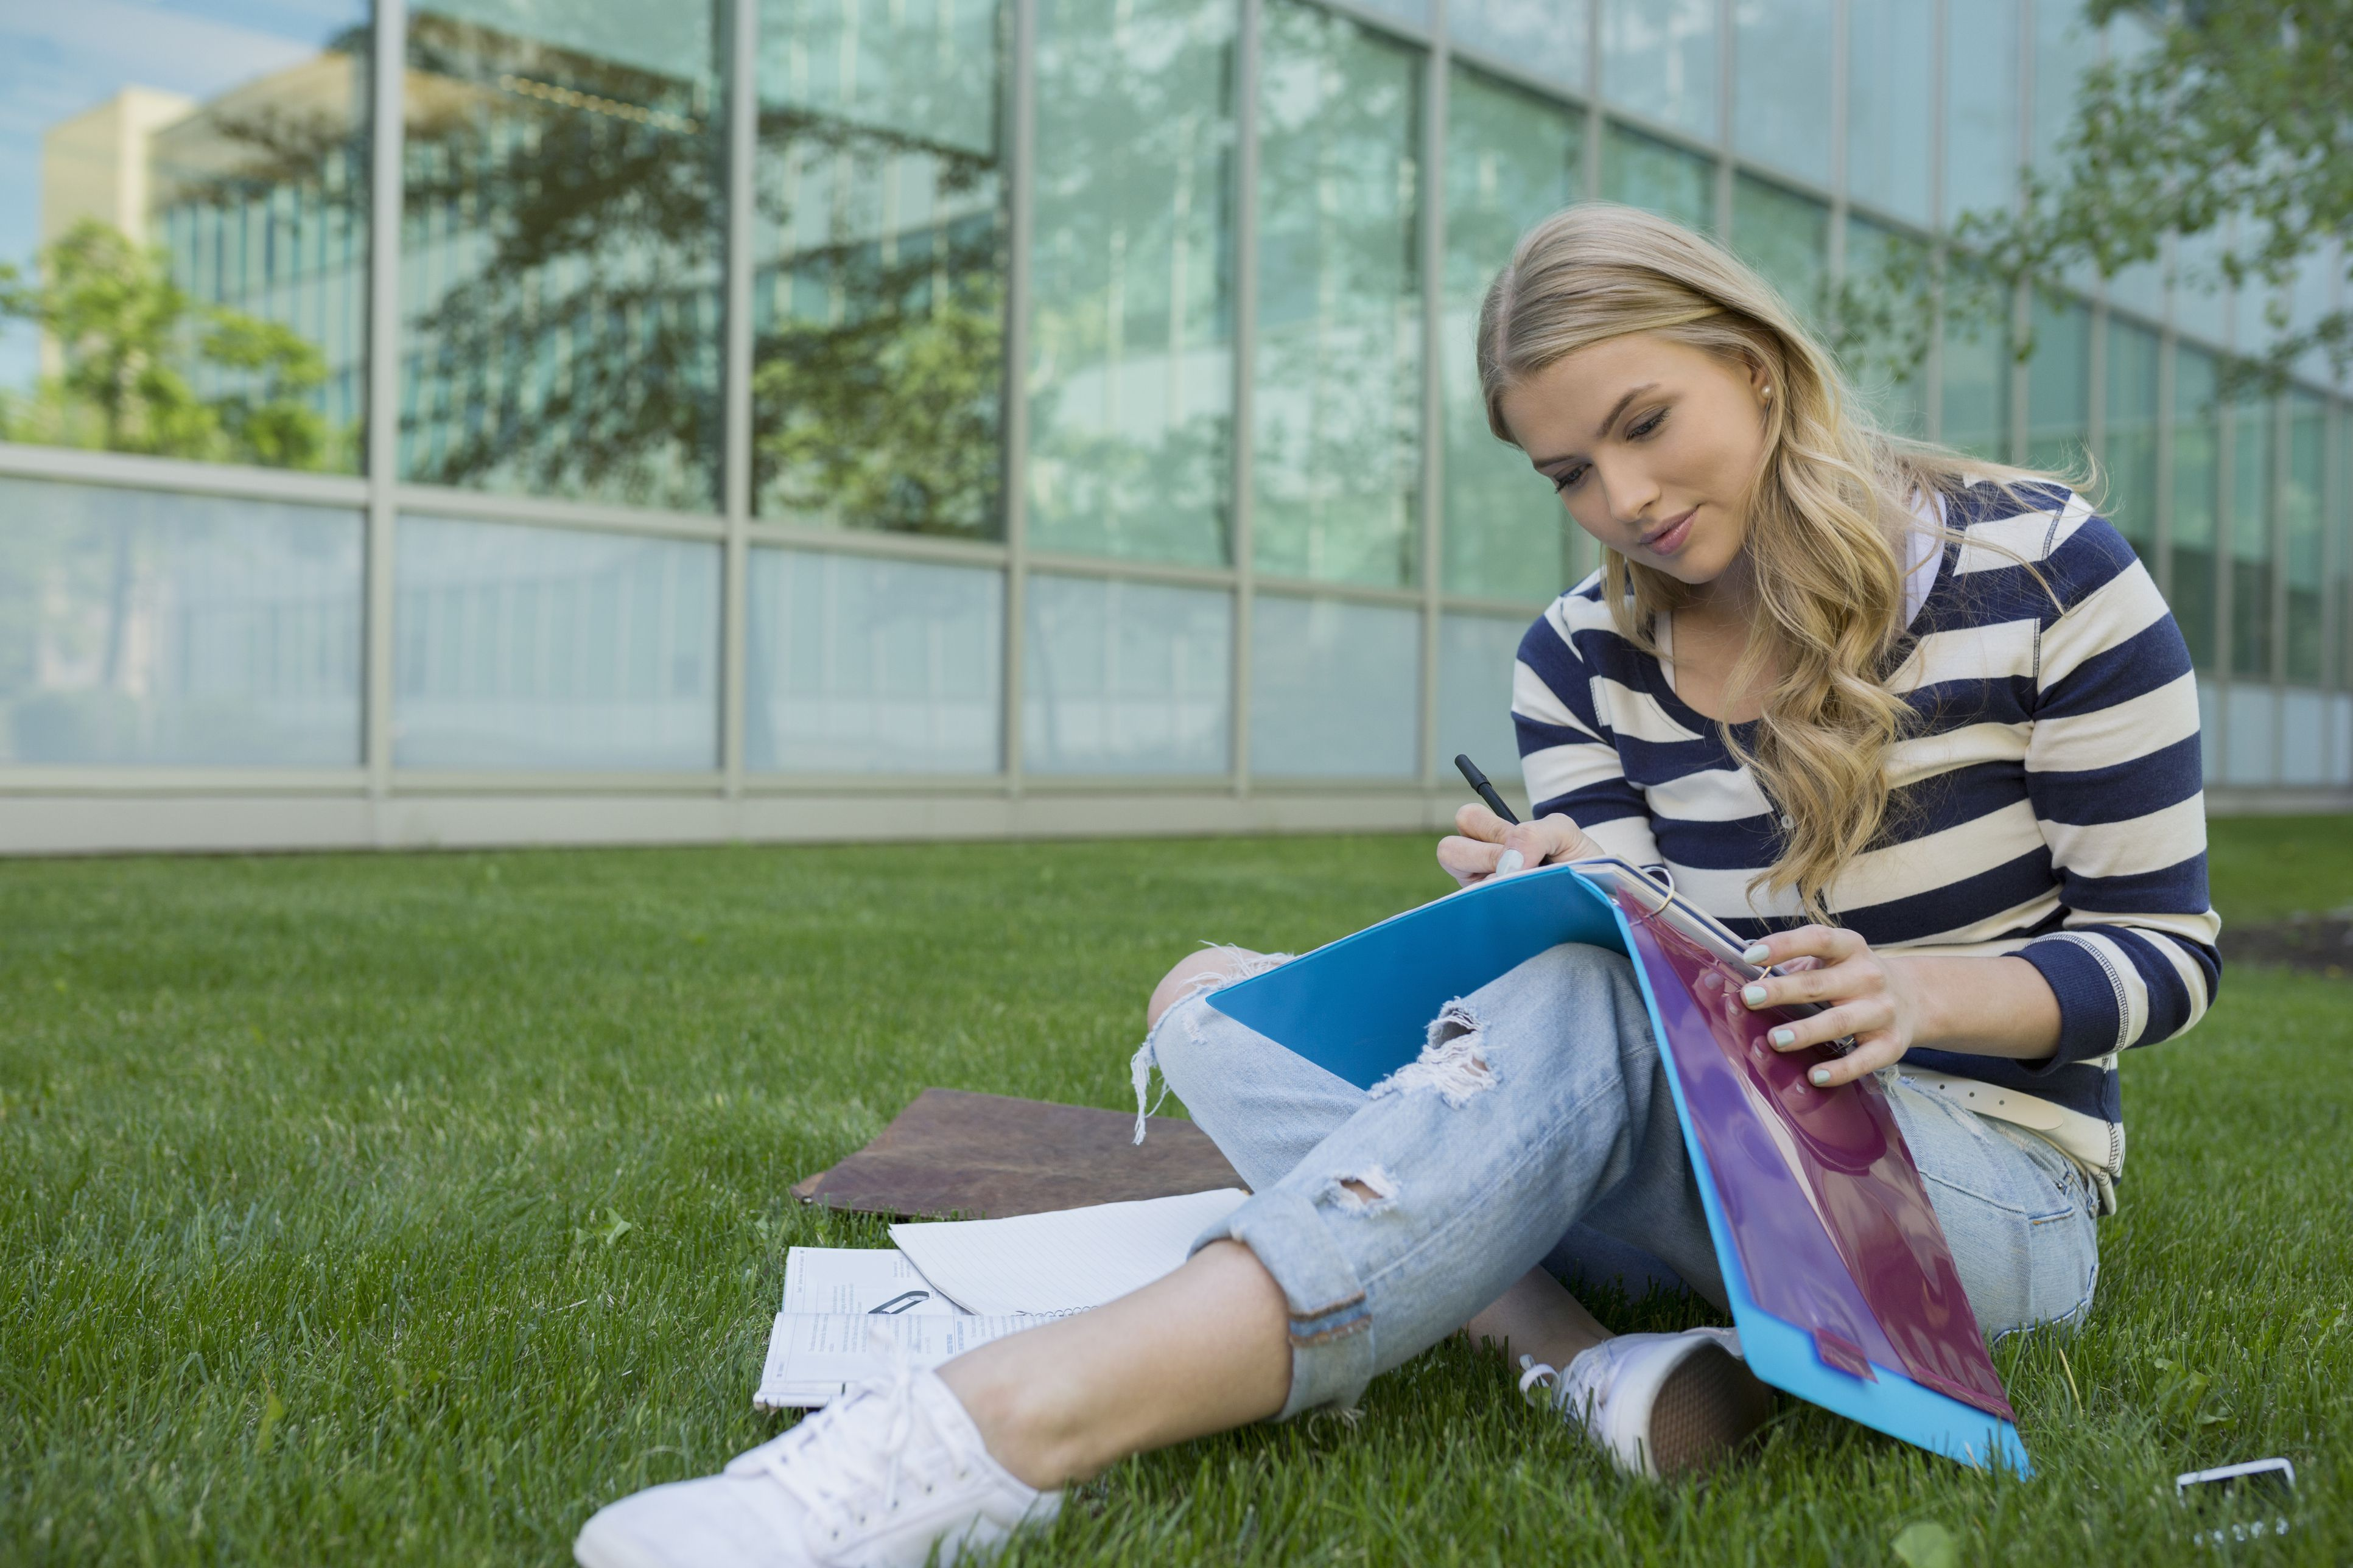 meaningful learning essay A meaningful learning experience 6 pages 1524 words november 2014 saved essays save your essays here so you can locate them quickly.